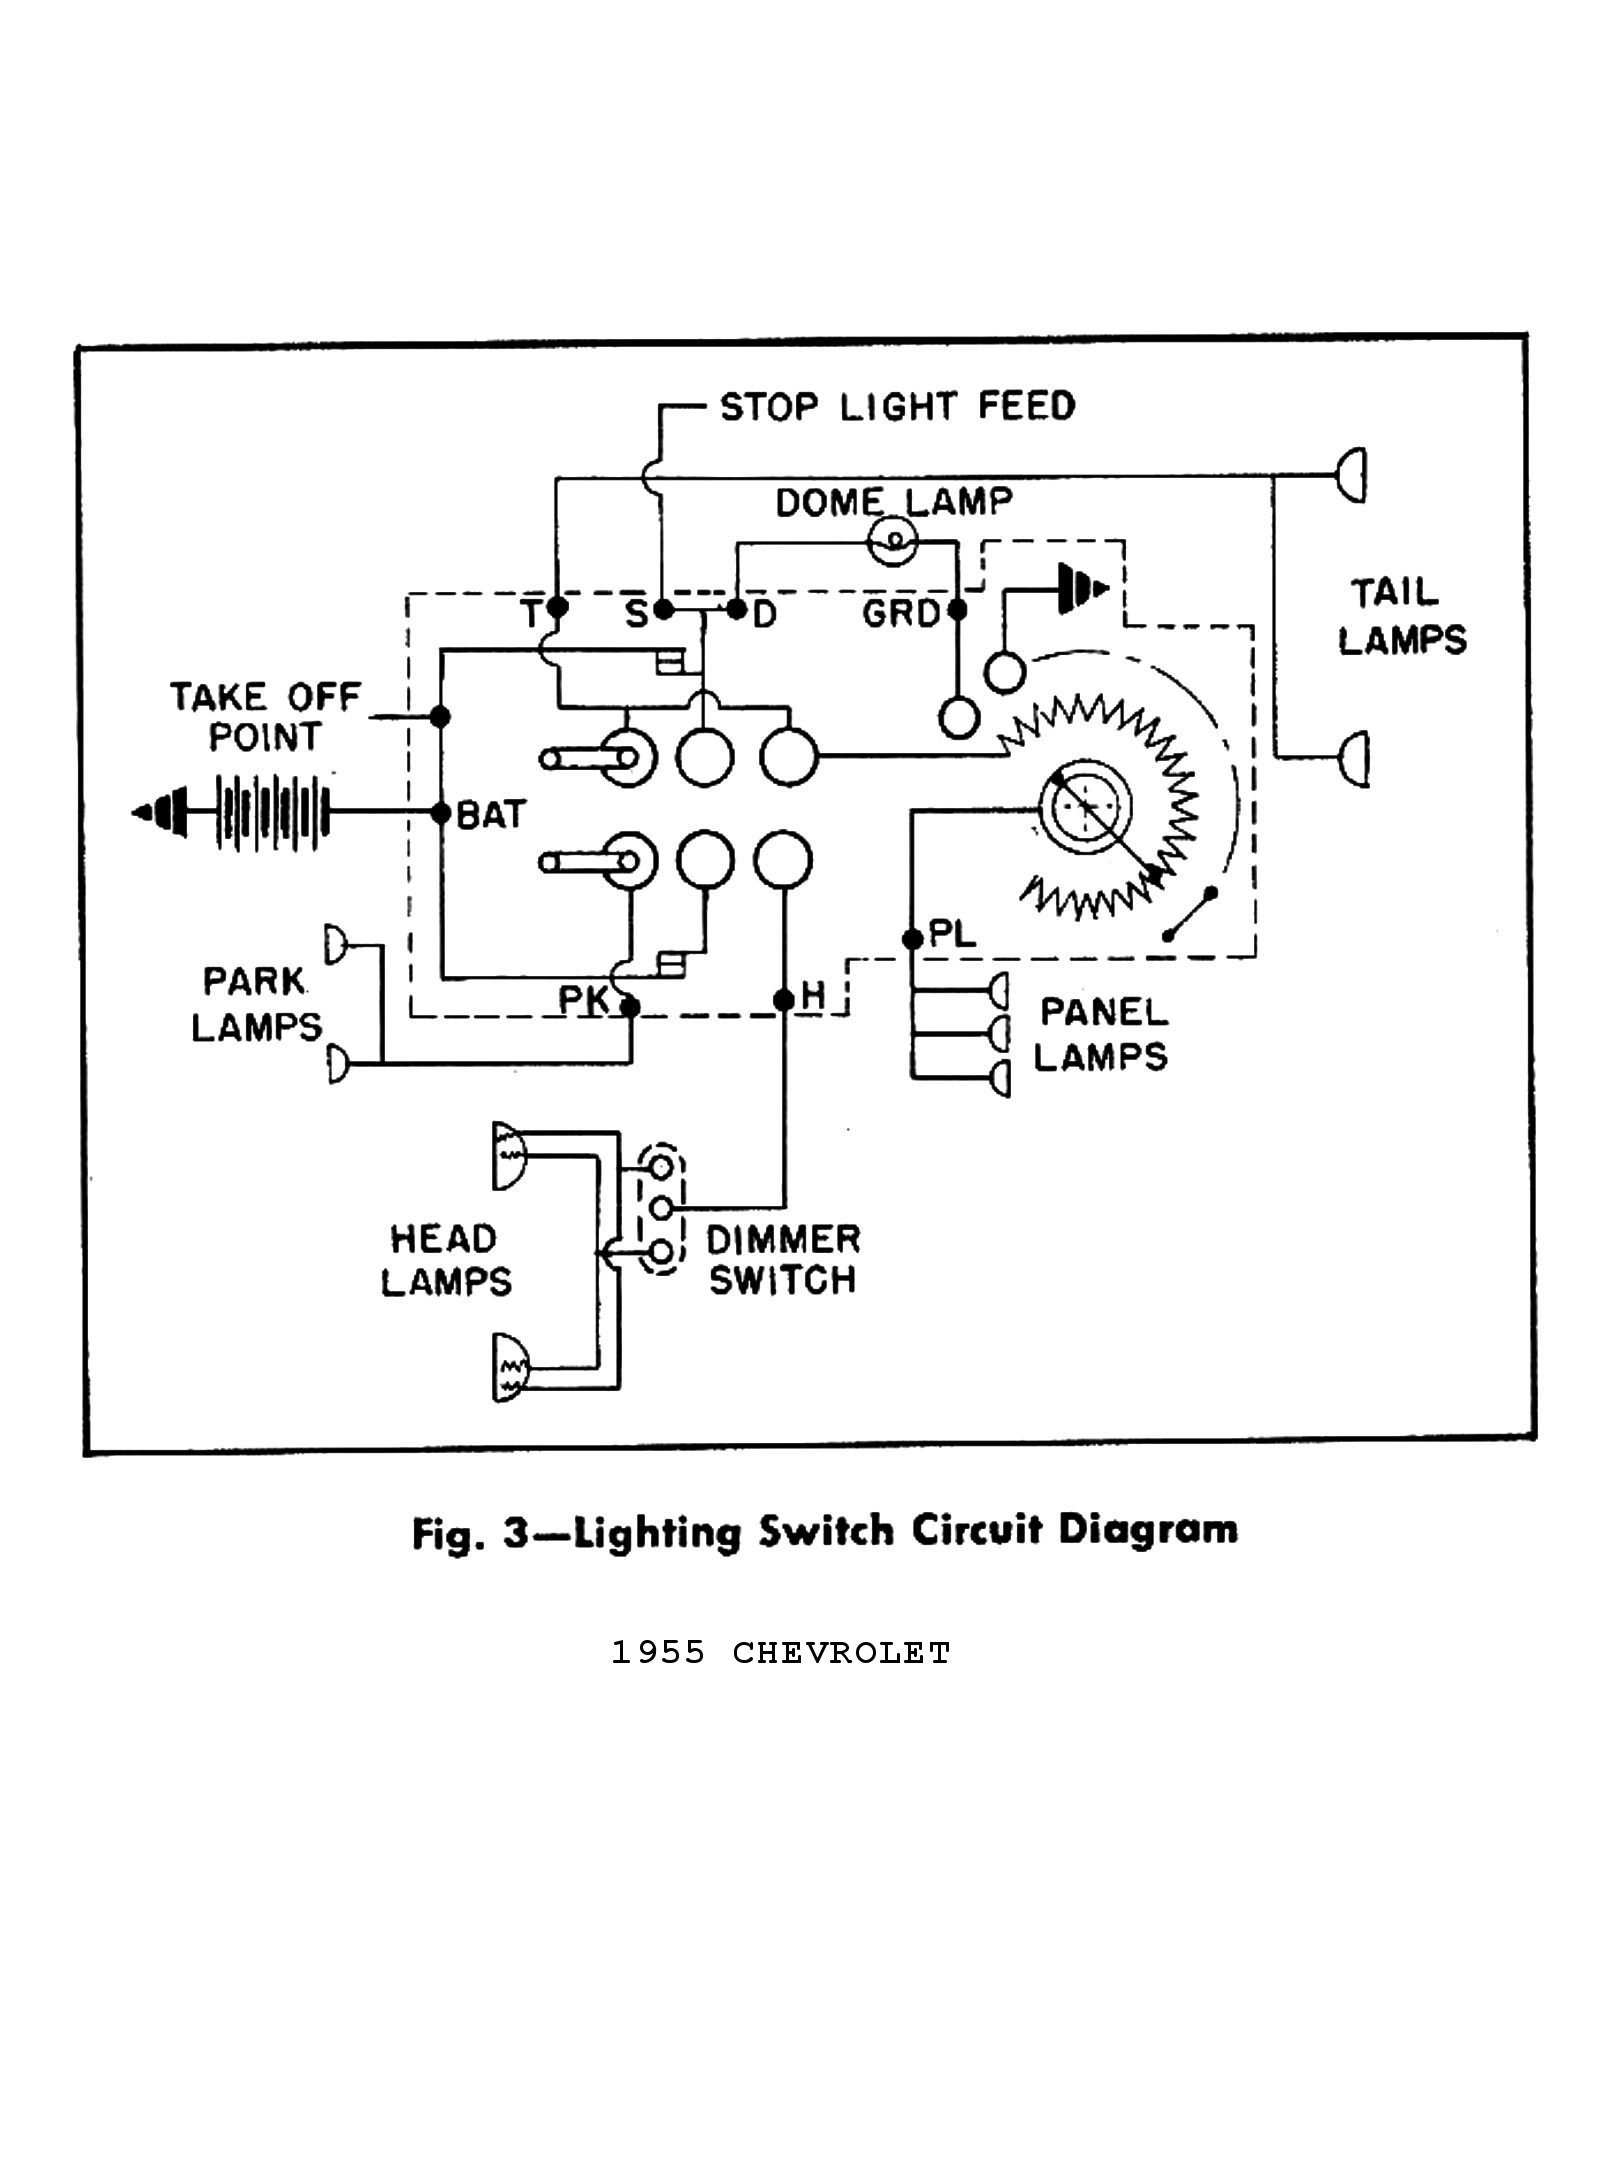 1975 Chevy K 5 Wiring Diagram Library Aprilia Fuse Box For 1957 Truck Just Data Alternator 1950